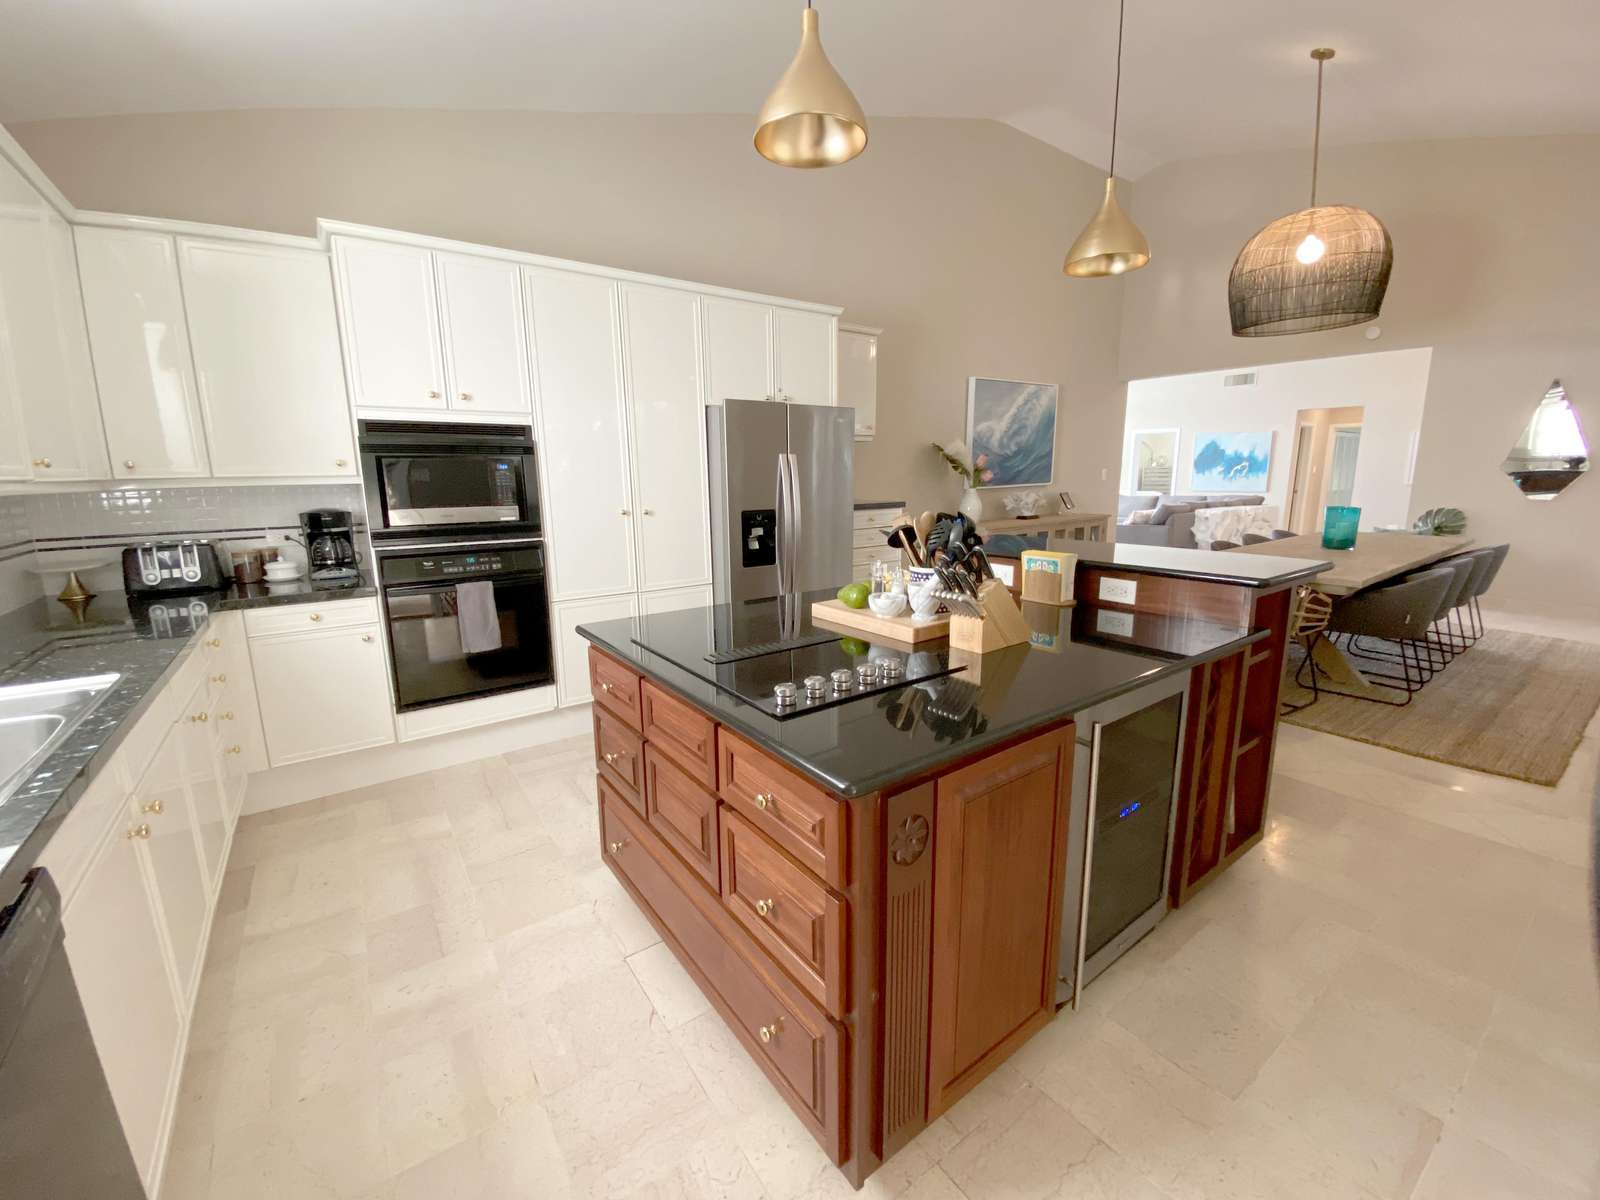 Fully equipped kitchen ready to entertain